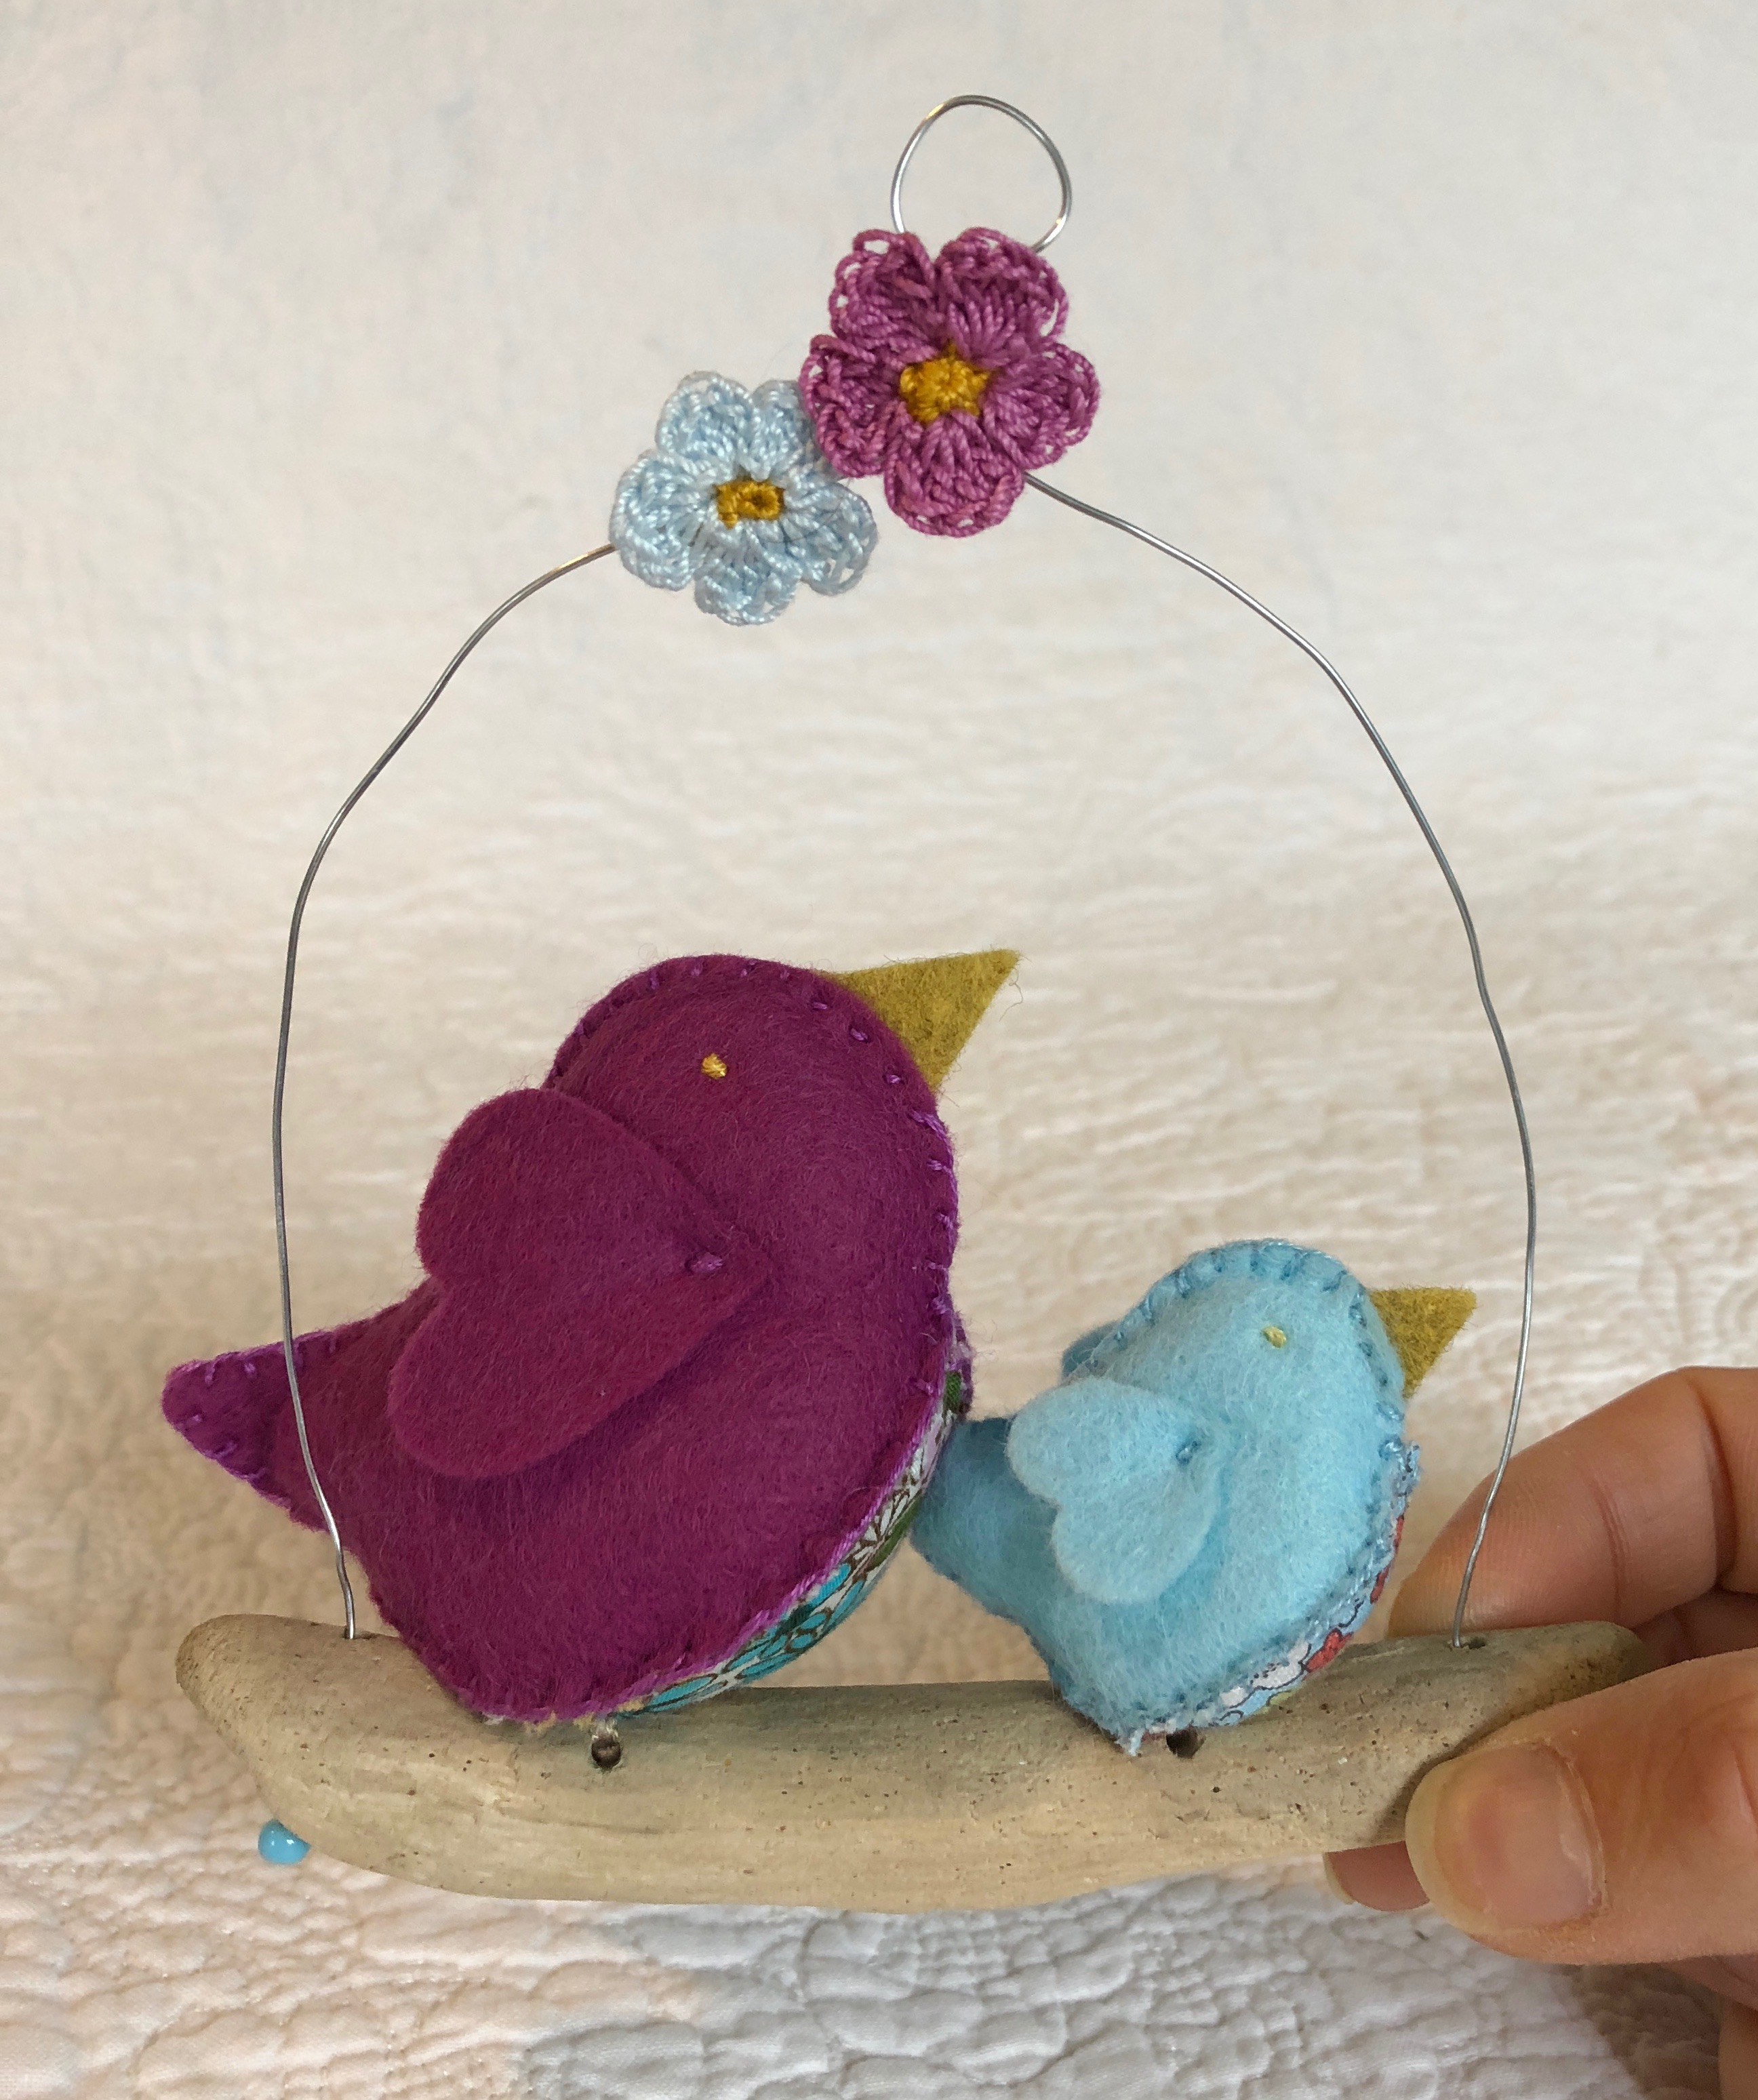 'Tweet love' in raspberry and pale blue.